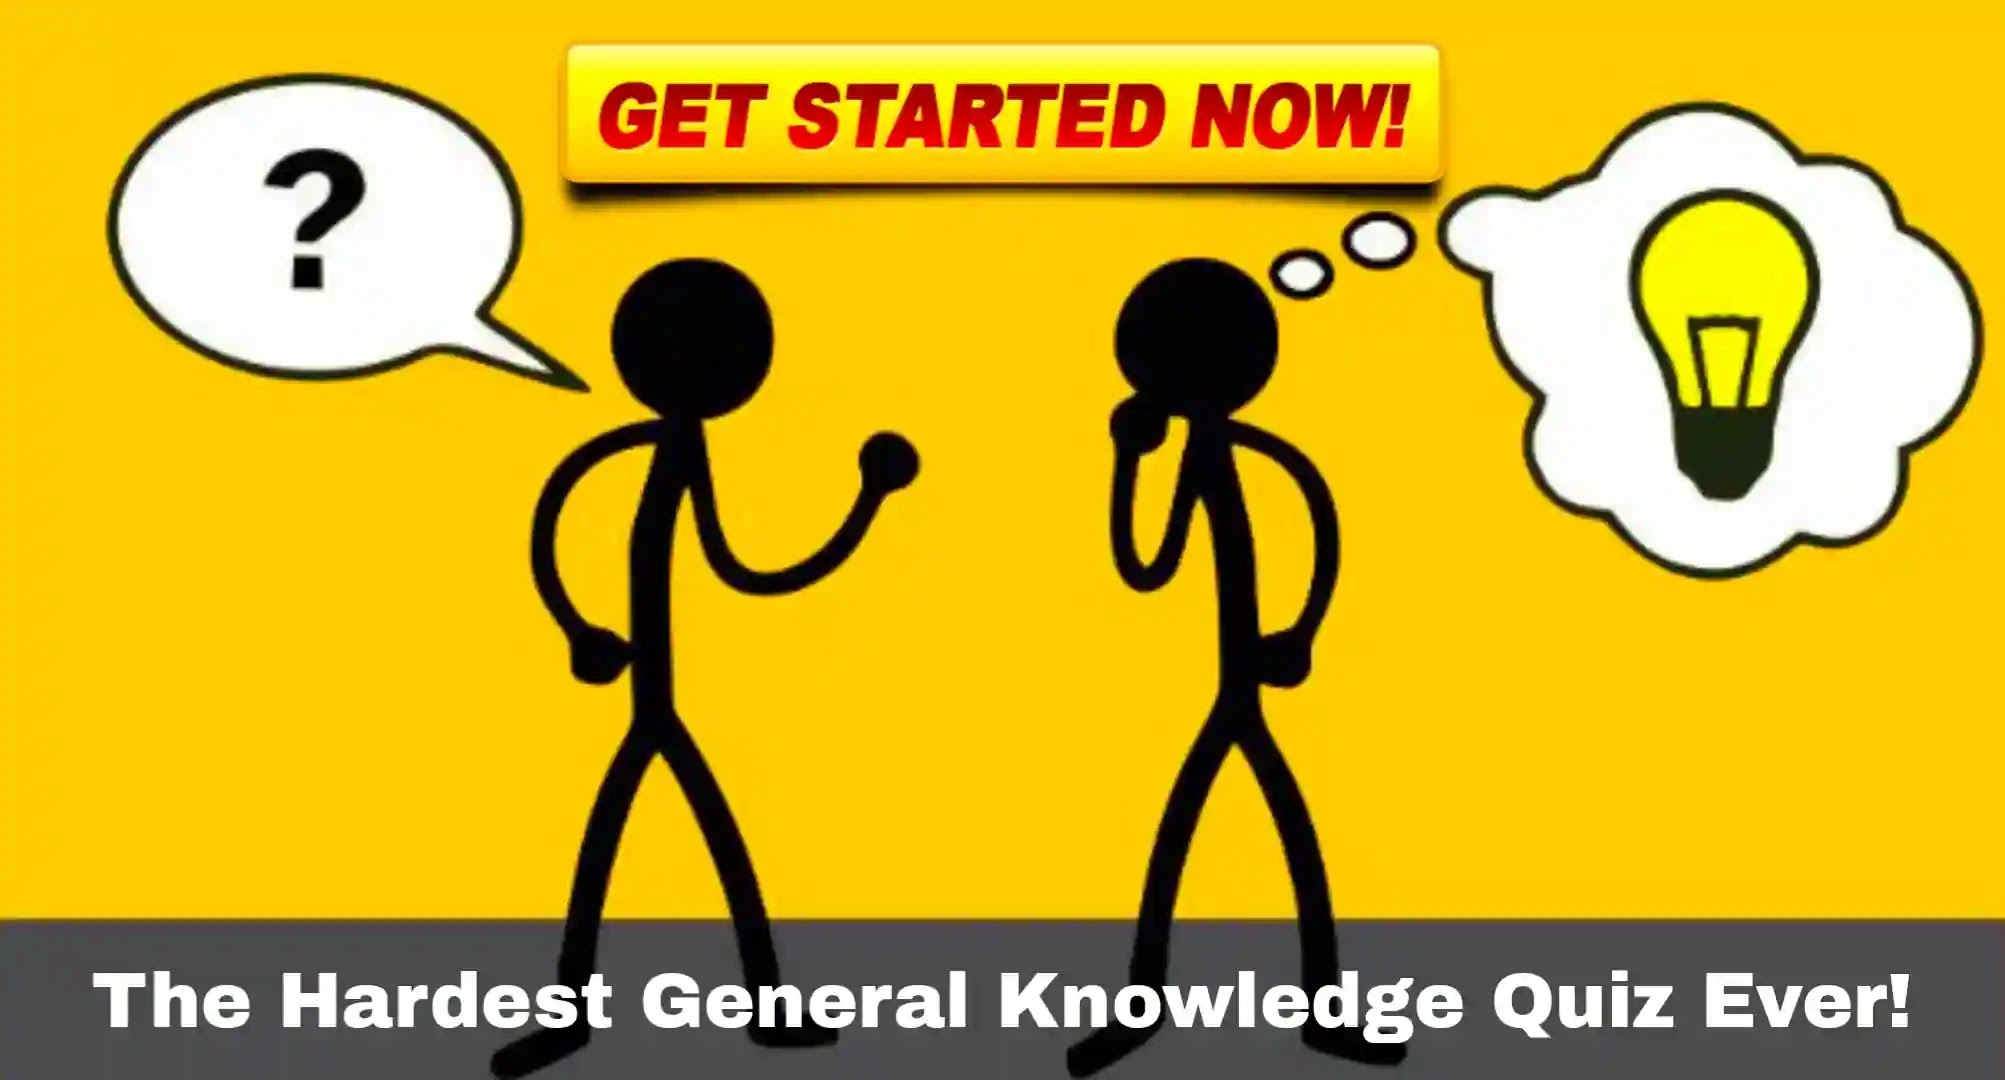 The Hardest General Knowledge Quiz Ever!